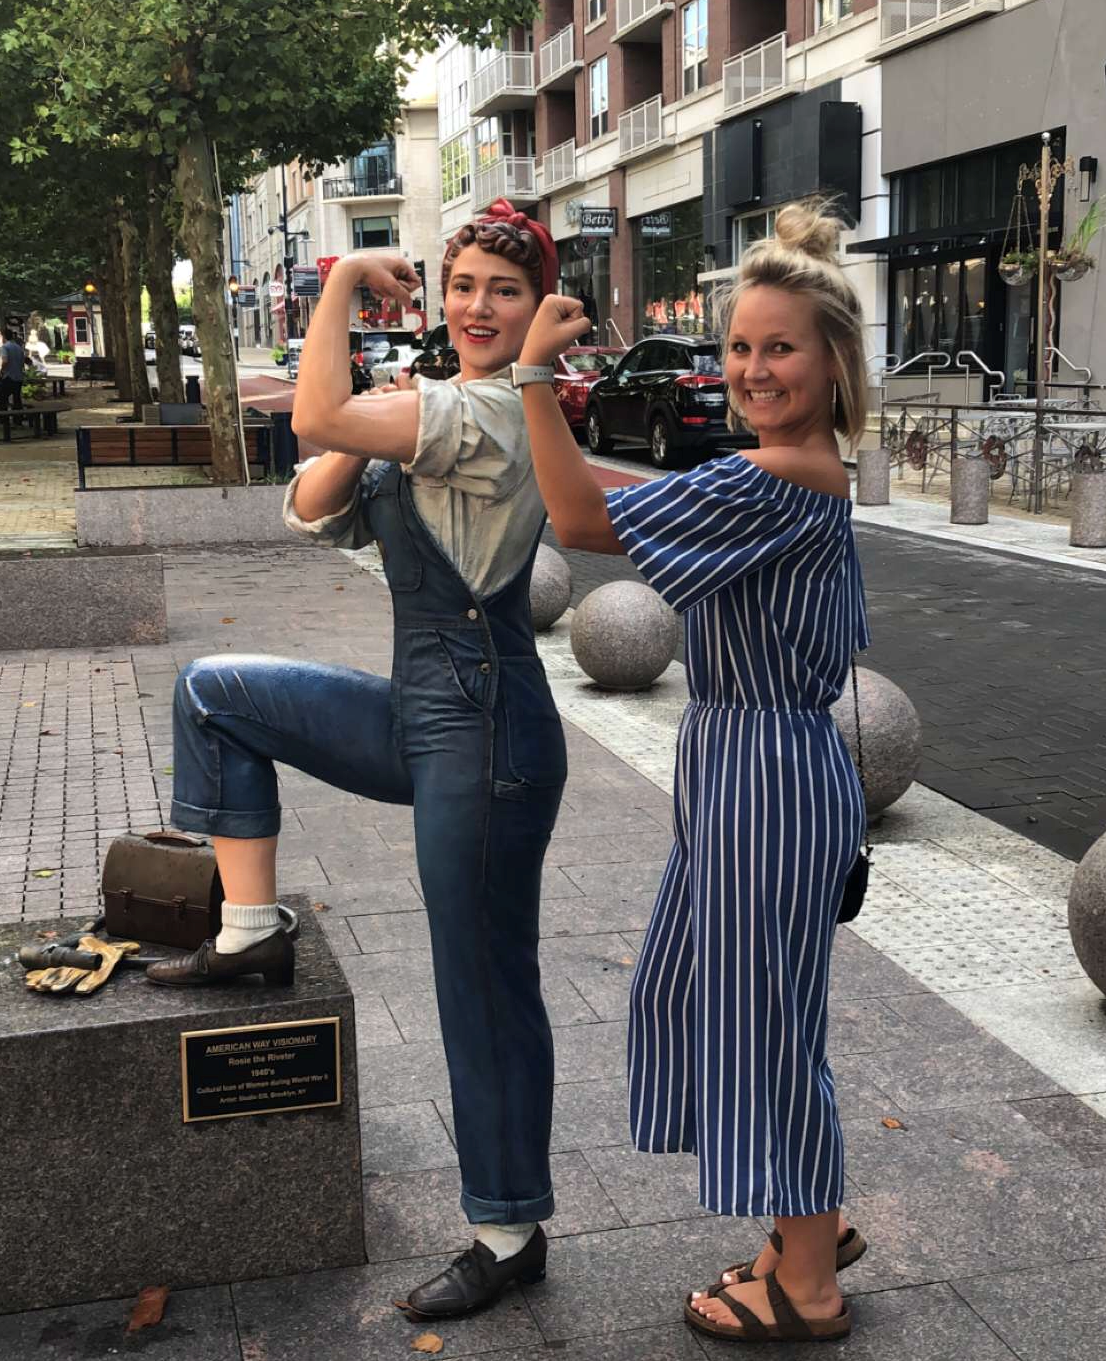 Brooke at the National Harbor in Maryland posing with a picture of Rosie the Riveter, the classic depiction of women in the 1940s who went to work in factories during WWII. Rosie is a great role model because she represents women's independence in the workplace!